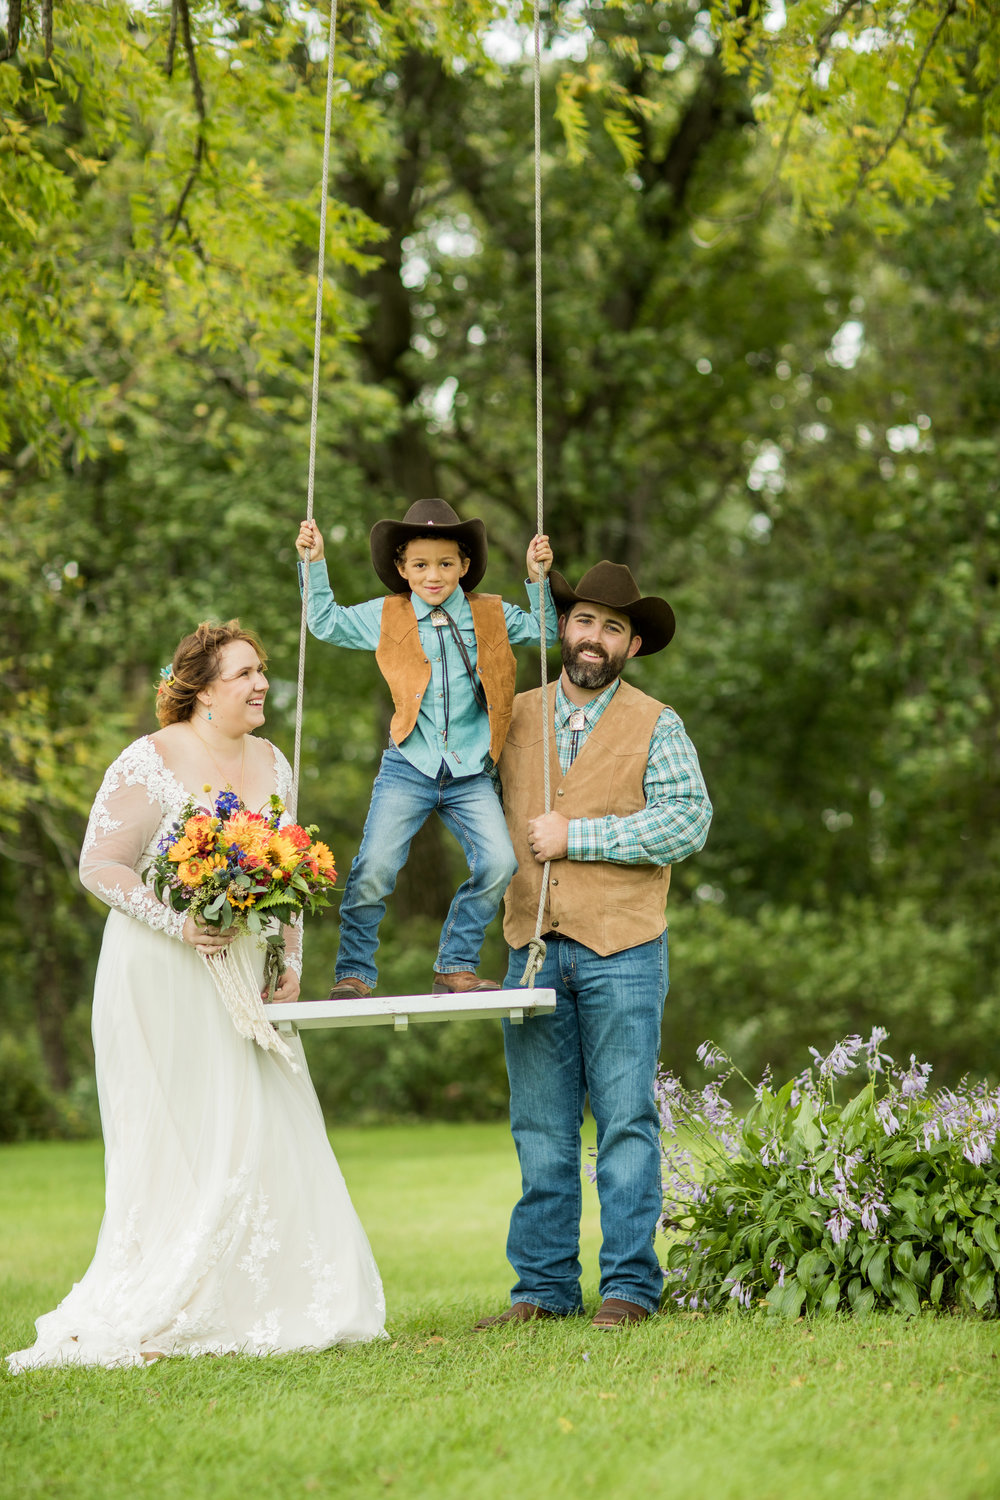 Bride and Son on Swing